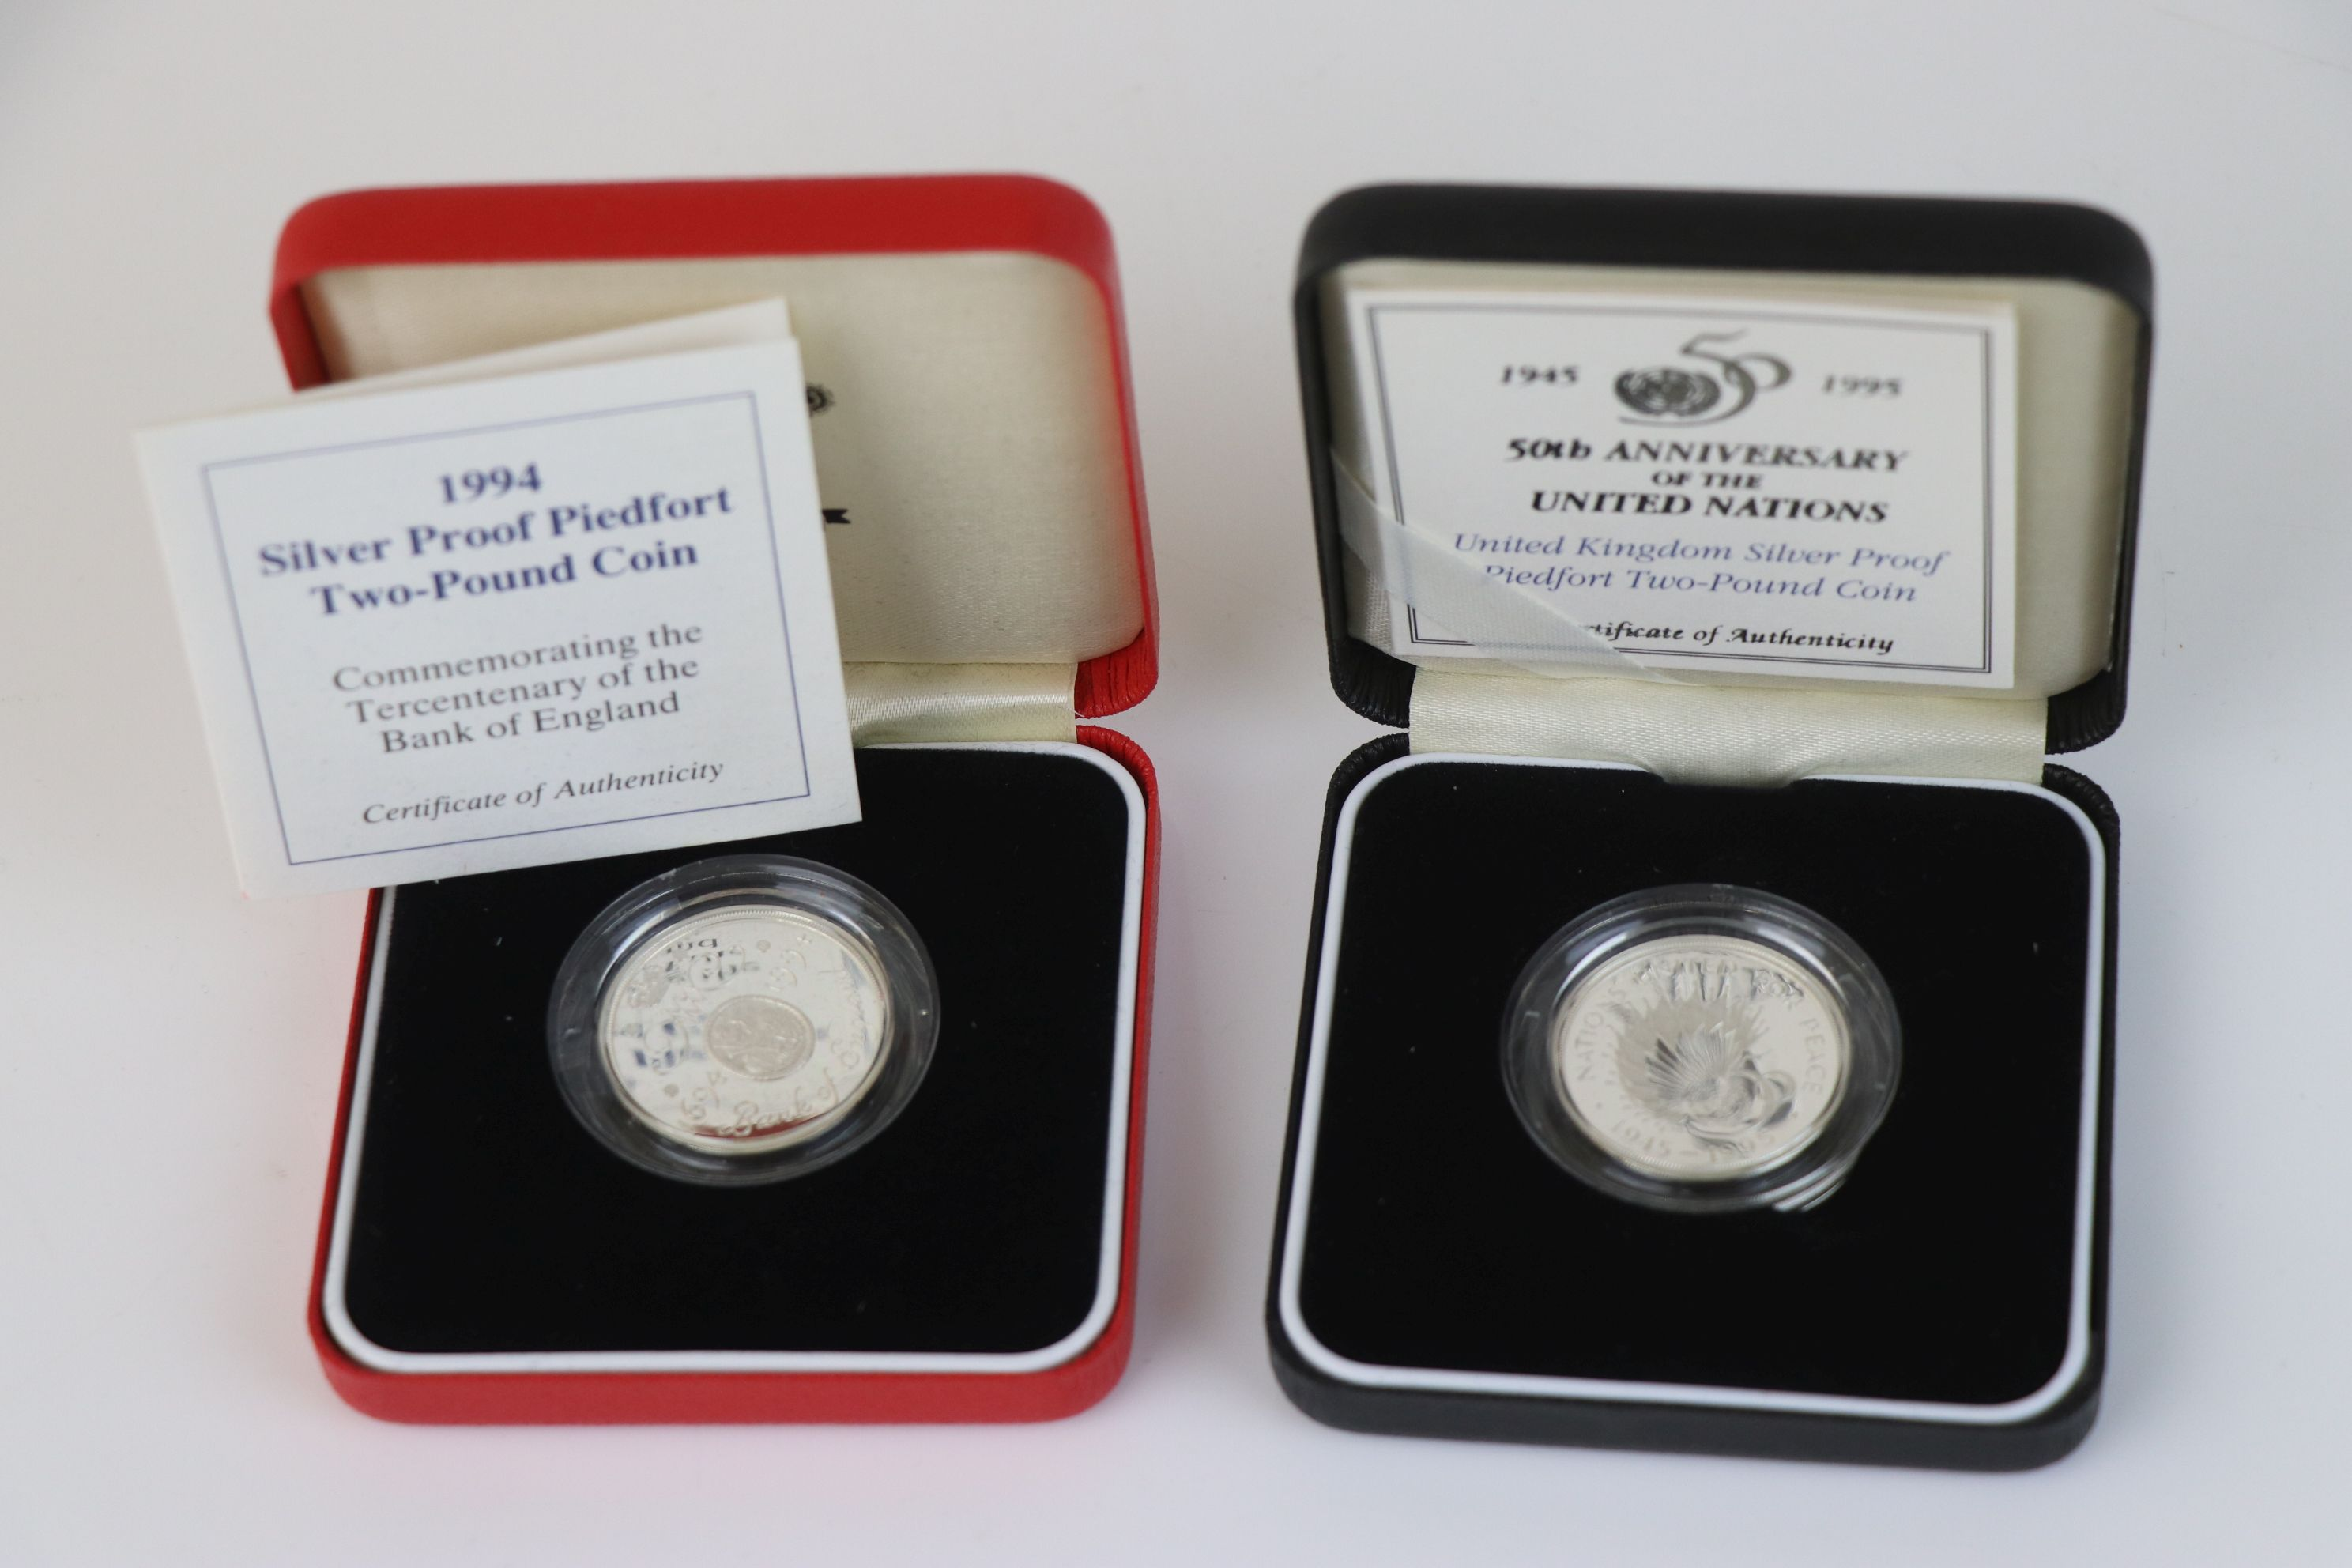 A cased Royal Mint 1994 silver proof Piedfort £2 coin commemorating the Tercentenary of the Bank - Image 2 of 5